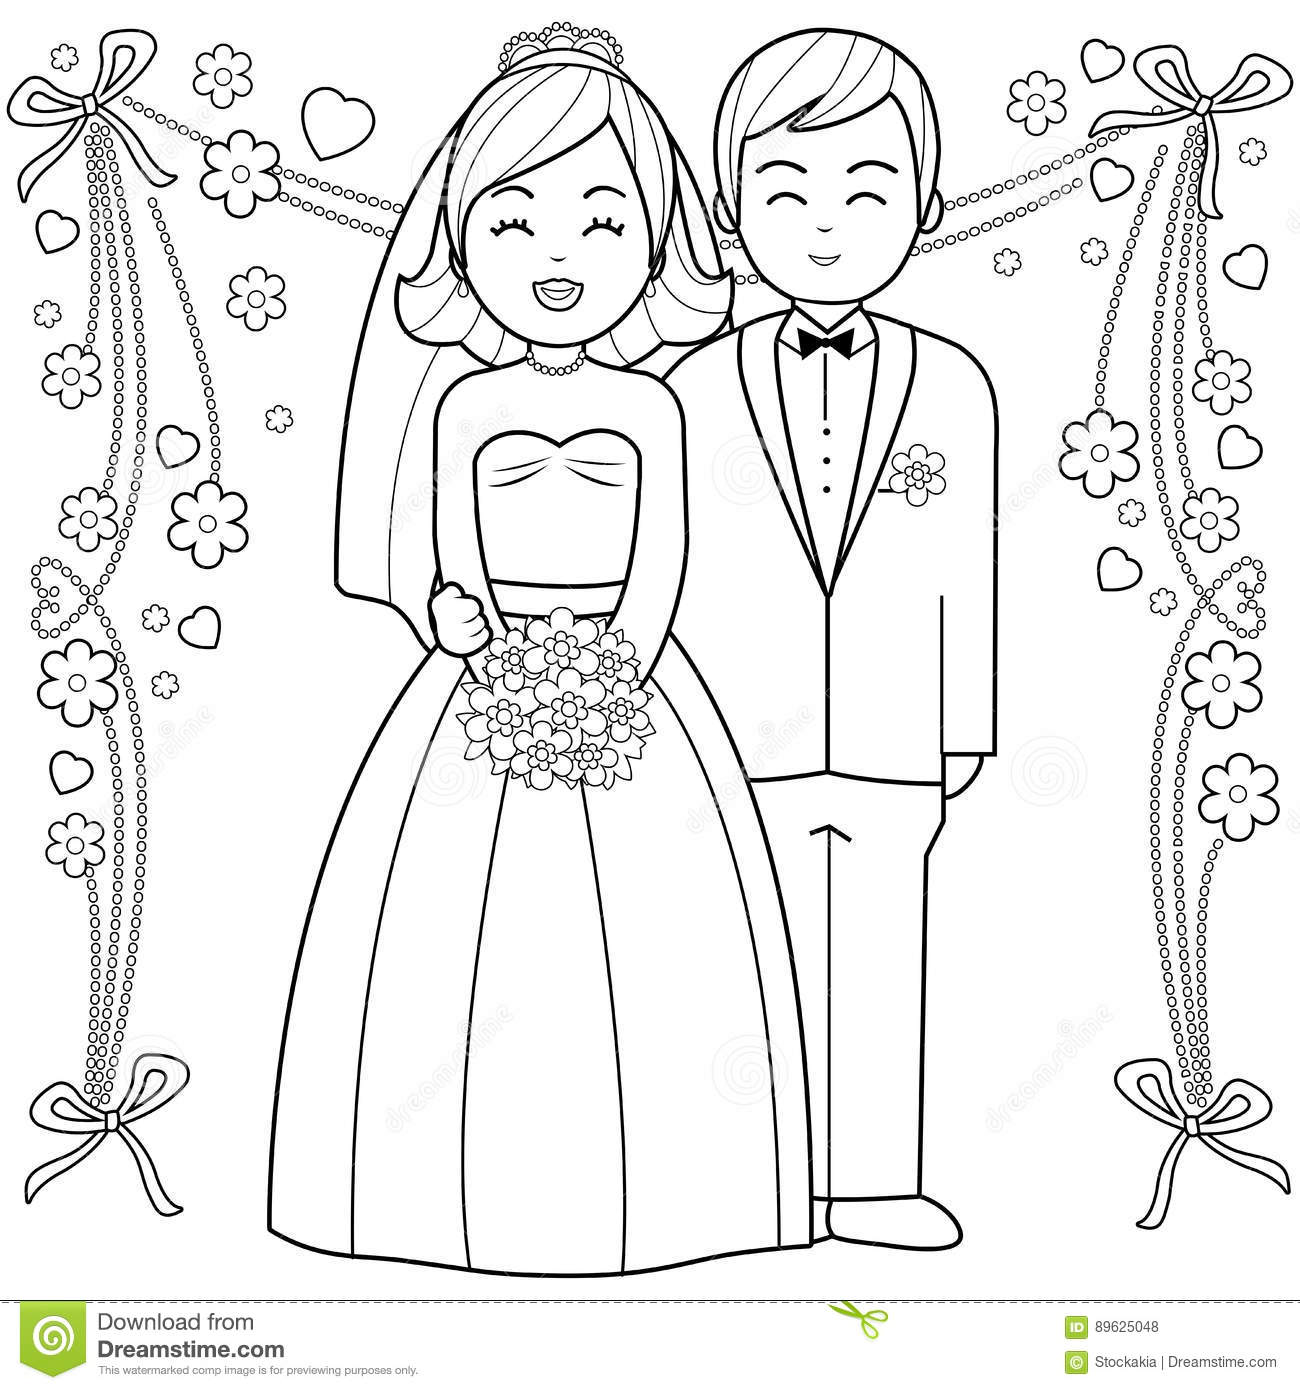 bride and groom coloring book page stock vector illustration of